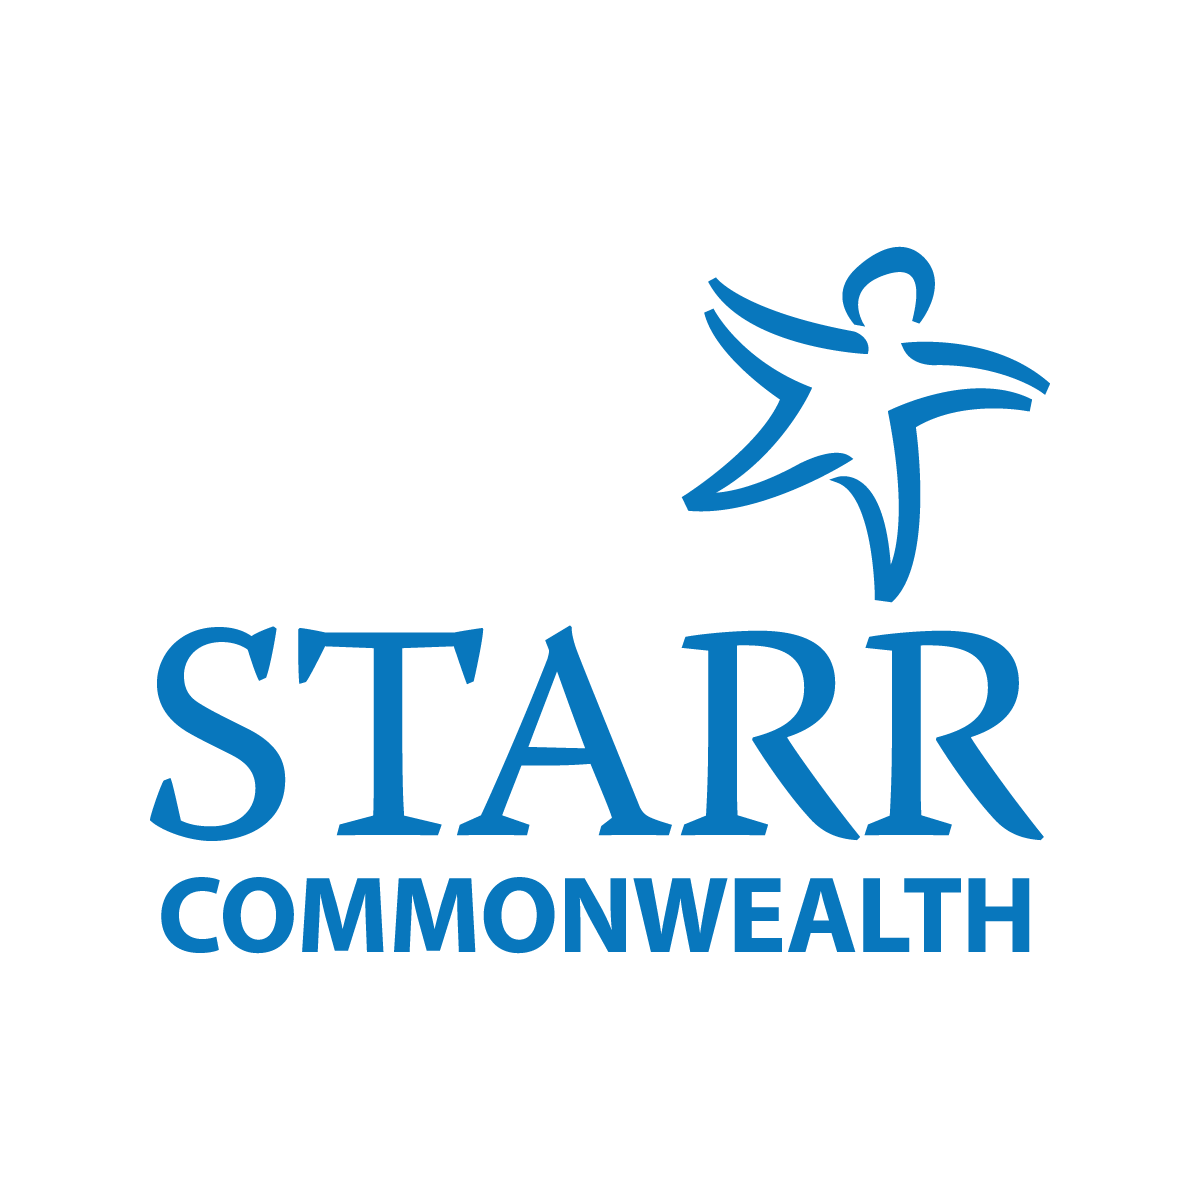 Starr Commonwealth - Driven to Heal